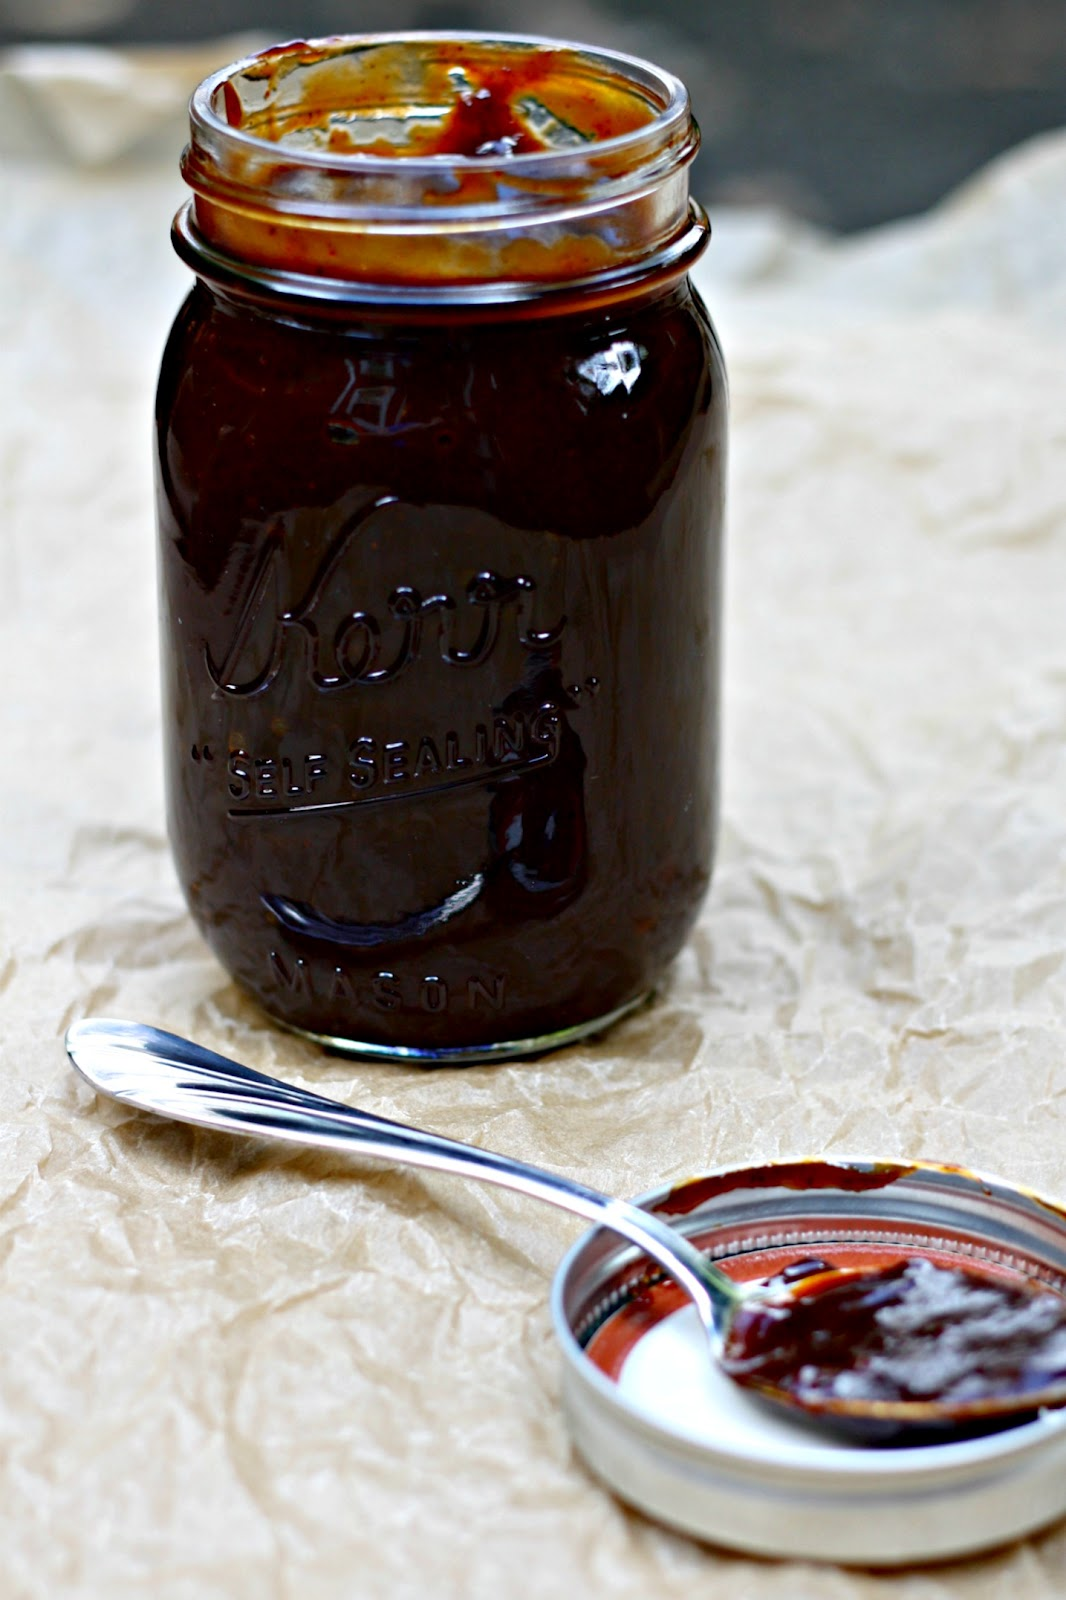 Bitchin' Kitchen: Homemade Kansas City-Style BBQ Sauce